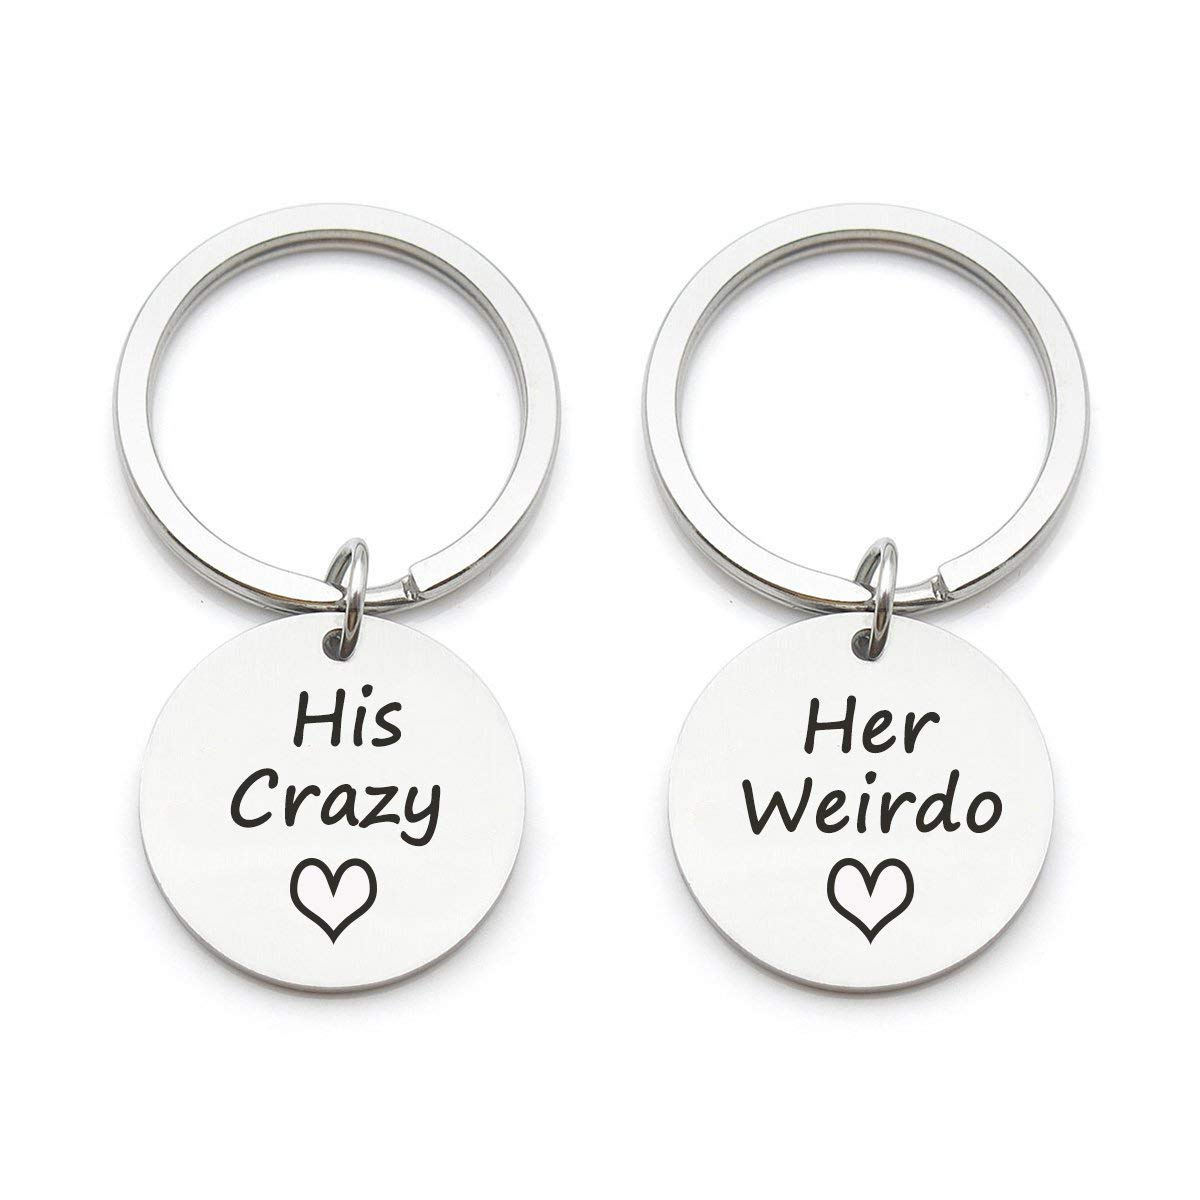 2a27e1eab5 2pcs Couples Keychain Gift- His Crazy Her Weirdo, Best Gift for Boyfriend  Girlfriend Husband